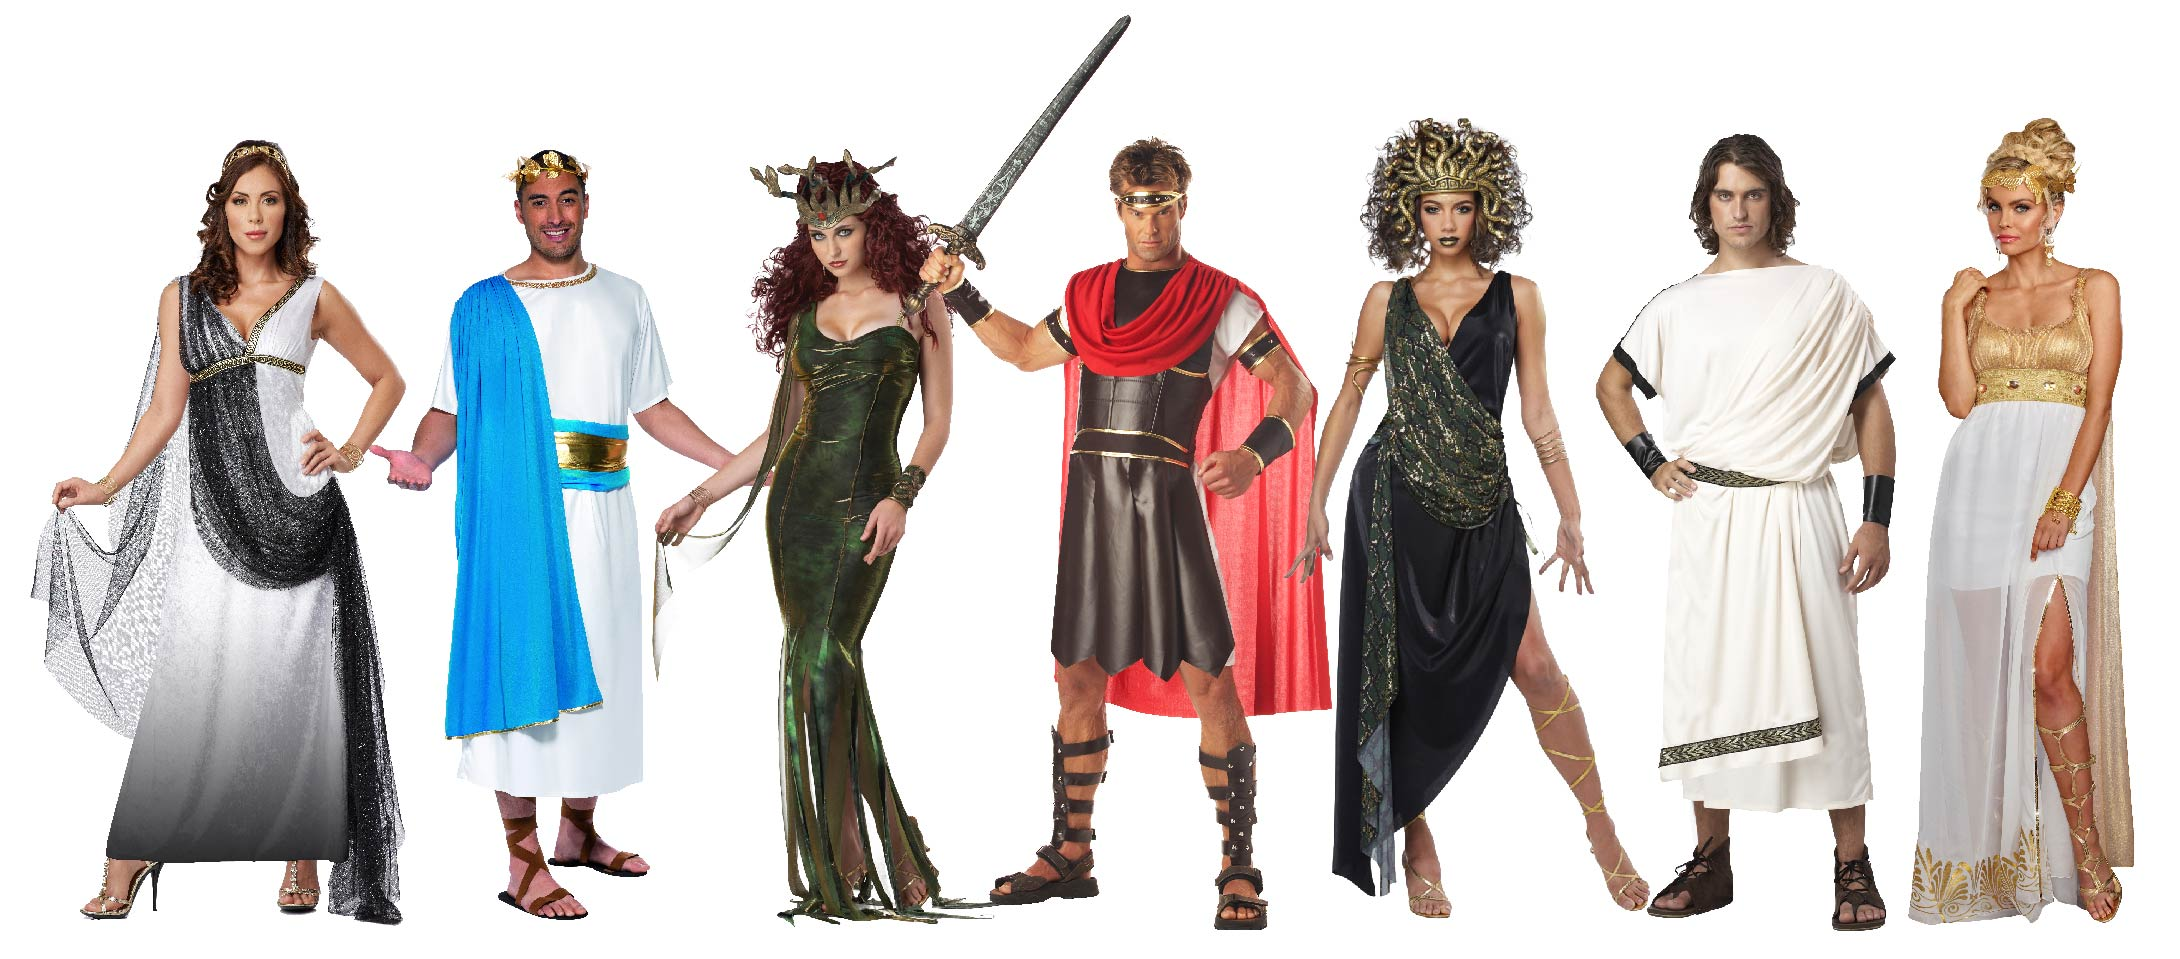 Group of people wearing Greek God & Goddess costumes including Medusa and Athena.